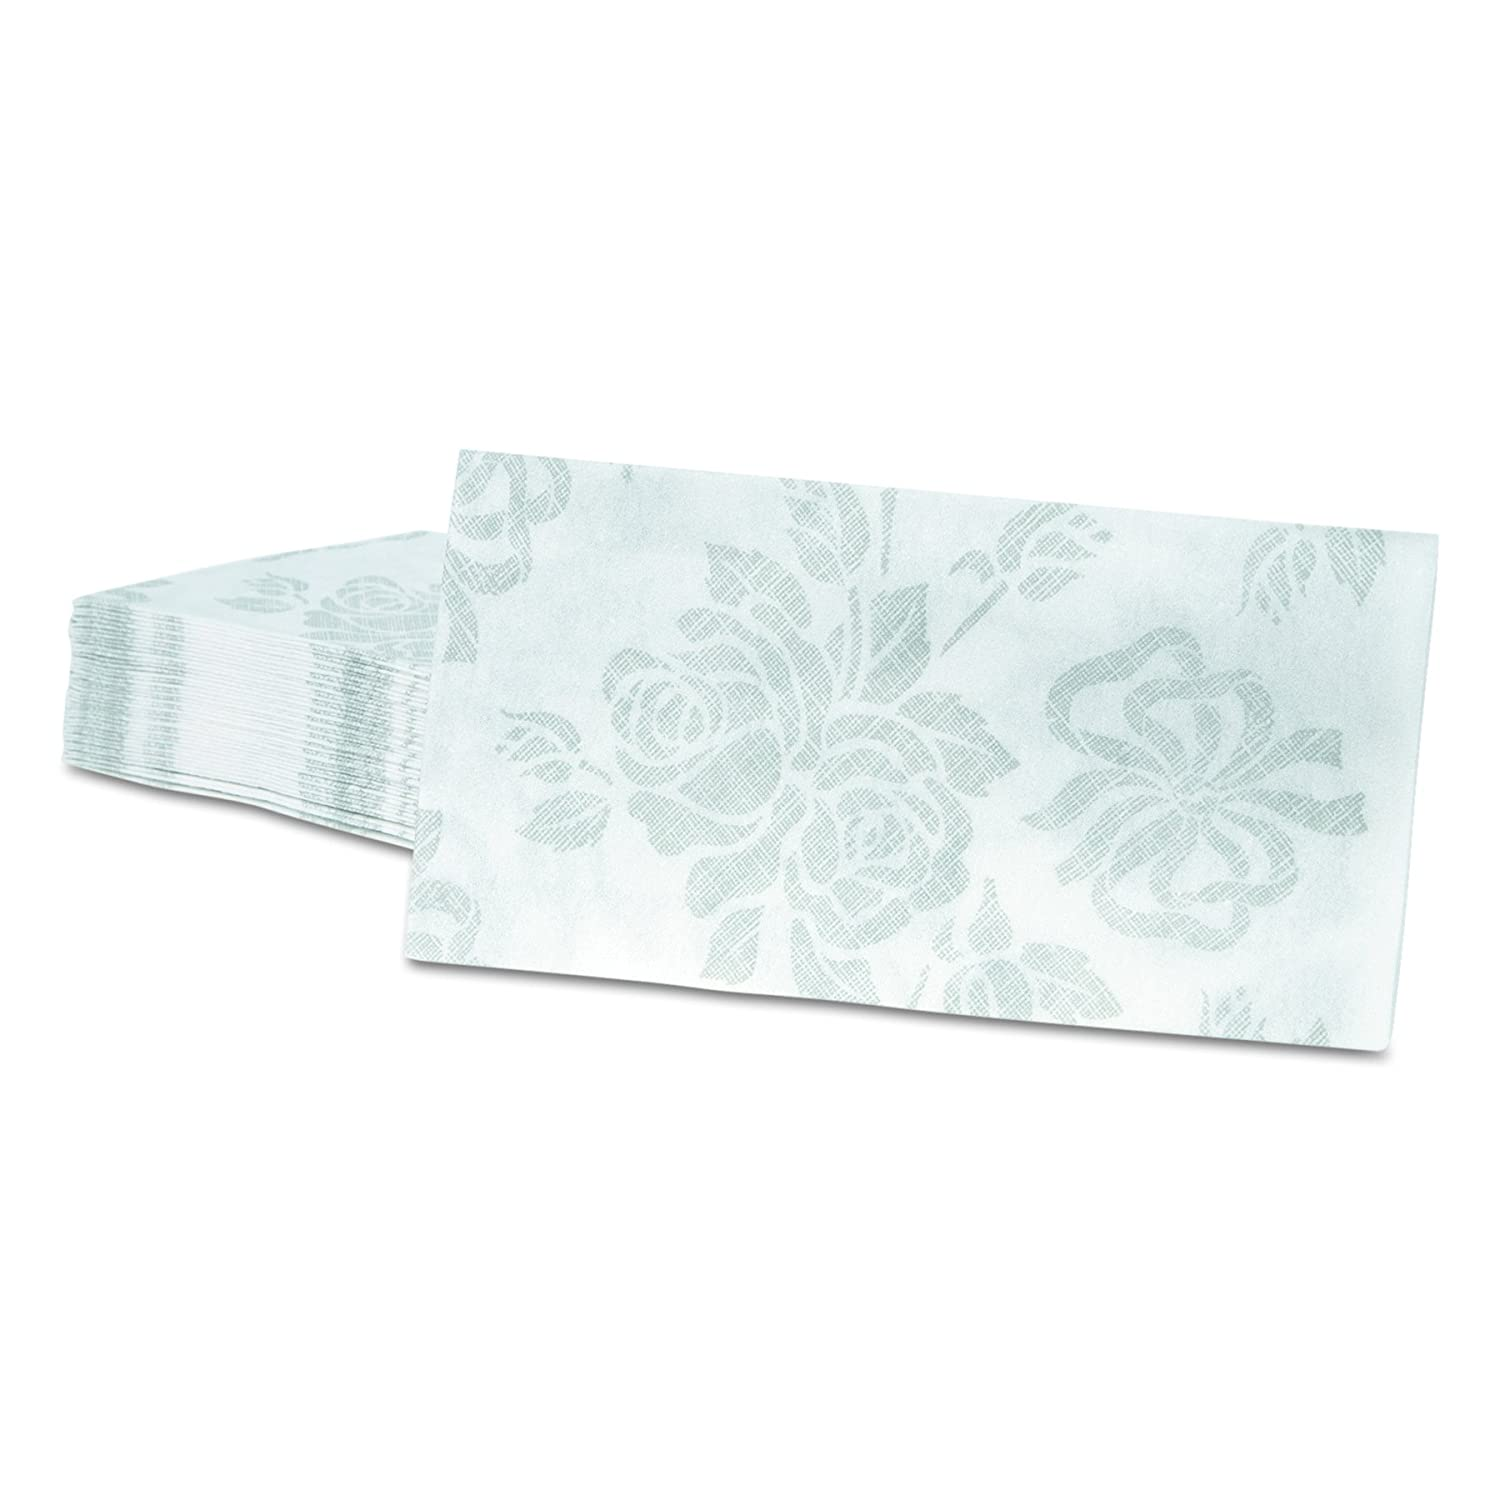 Hoffmaster 856513 Linen-Like Guest Towels Silver 125 per Pack Case of 4 Packs 17 x 12